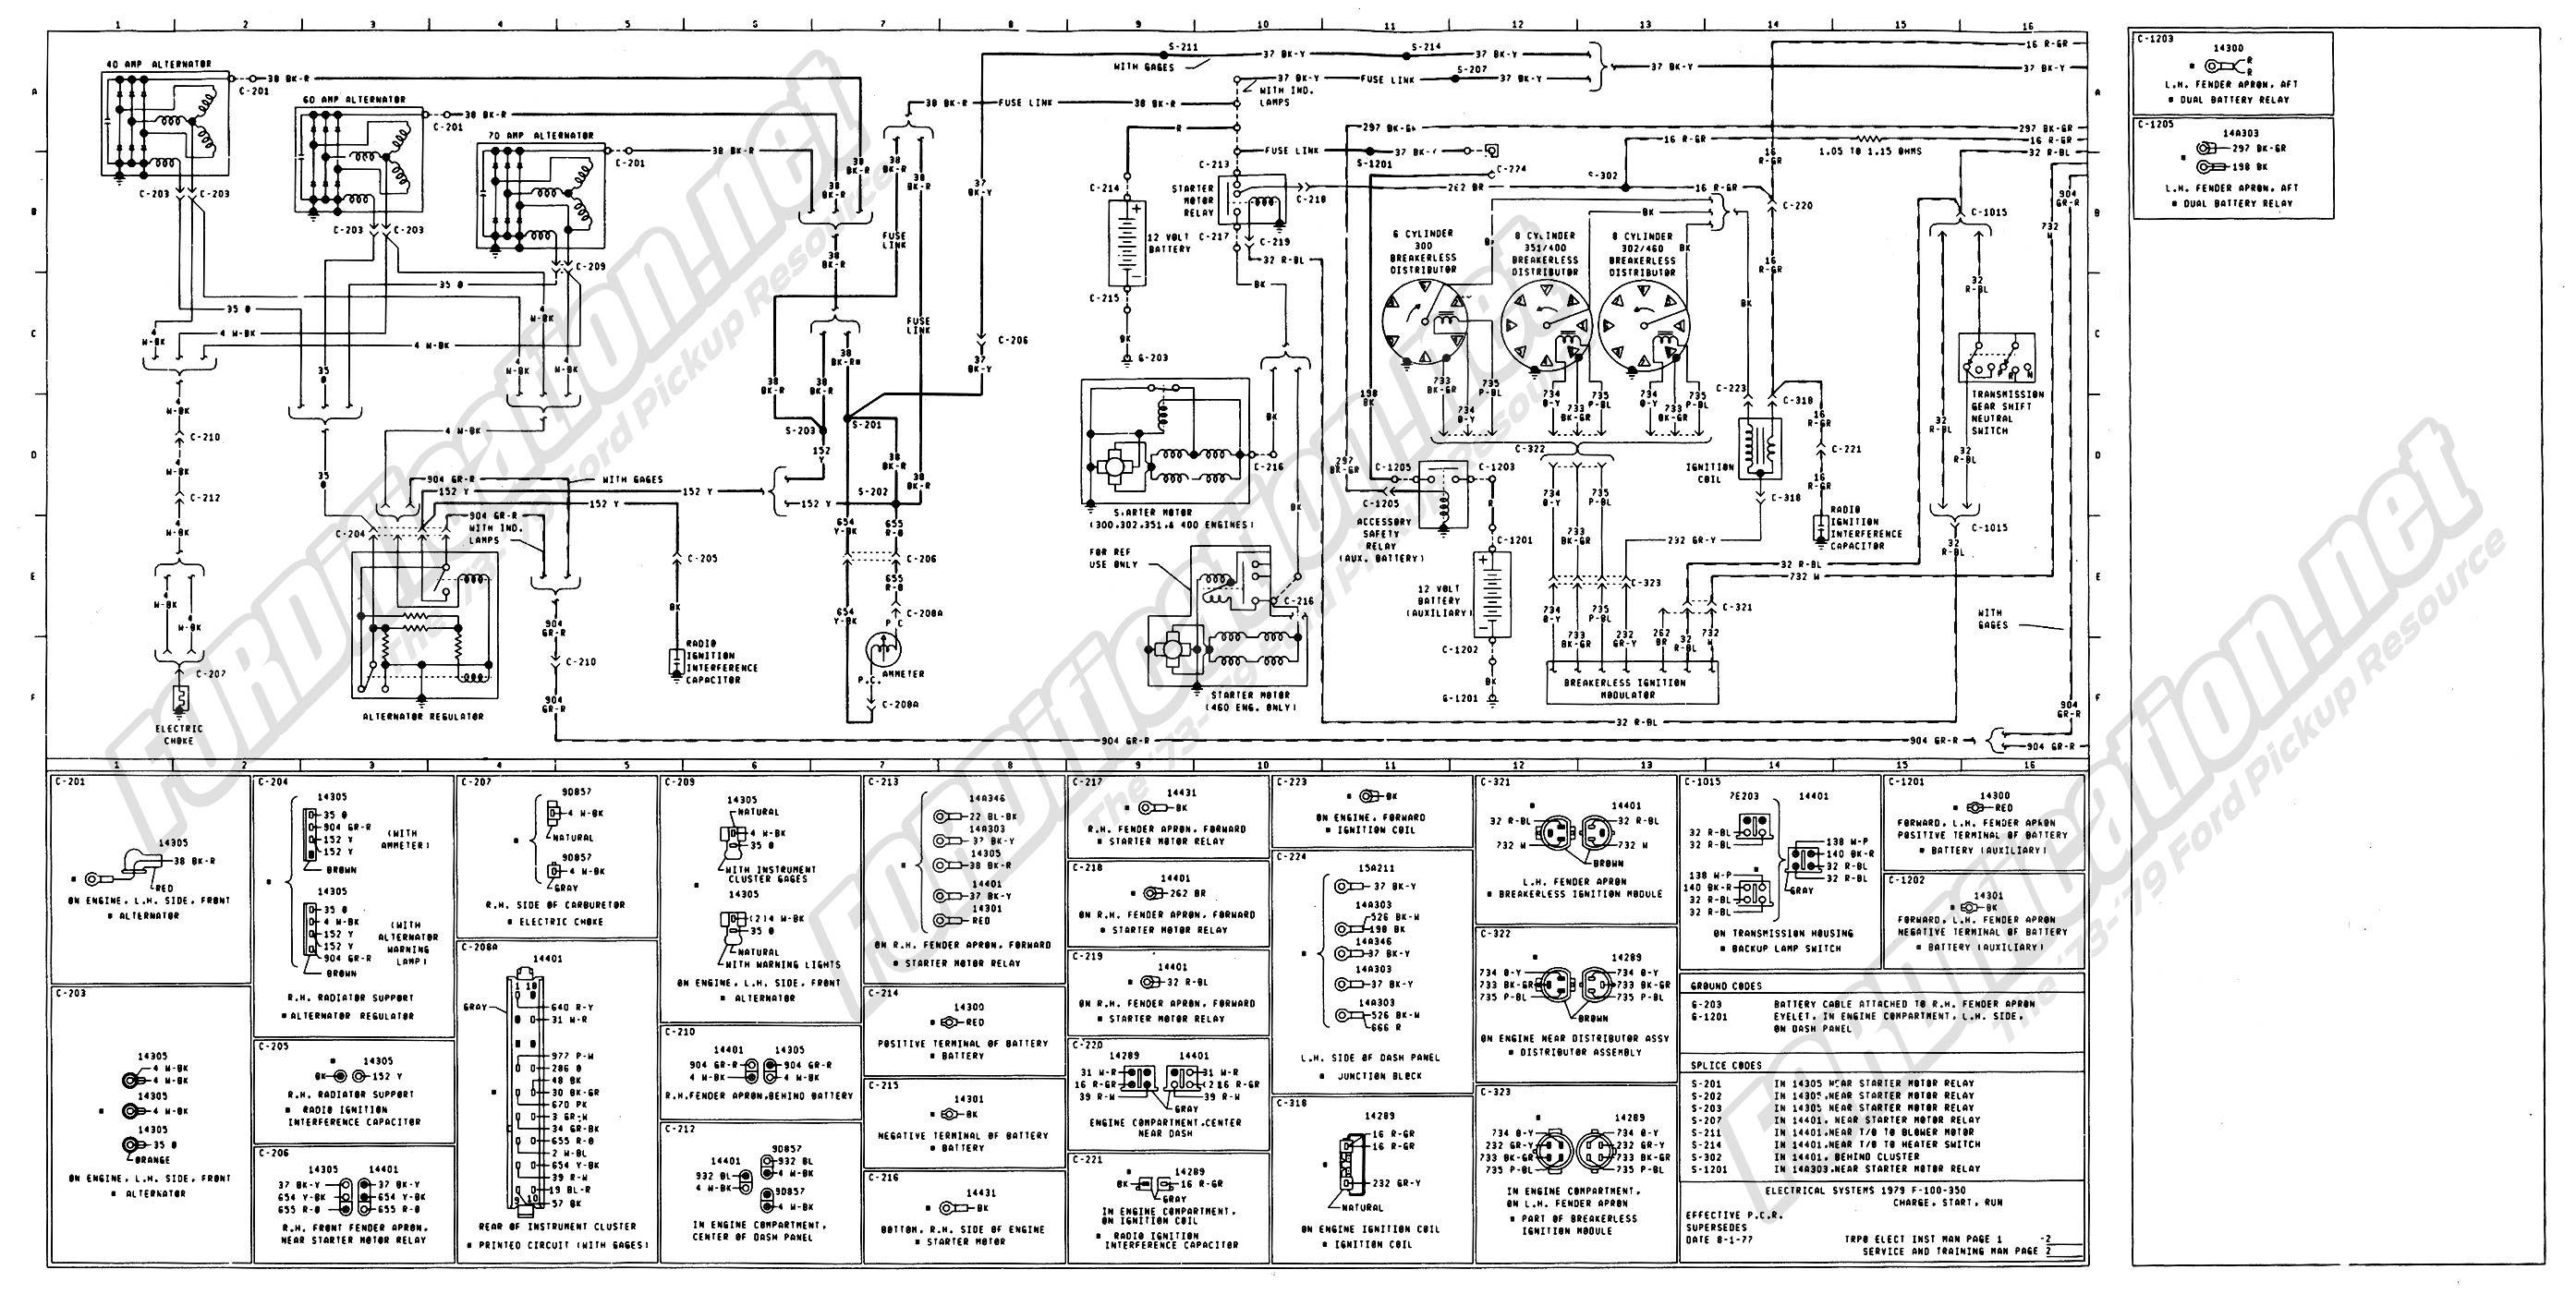 1973 1979 ford truck wiring diagrams schematics fordification net rh  fordification net 79 Ford Headlight Switch Wiring 2007 Ford F 250 Door Switch  Wiring